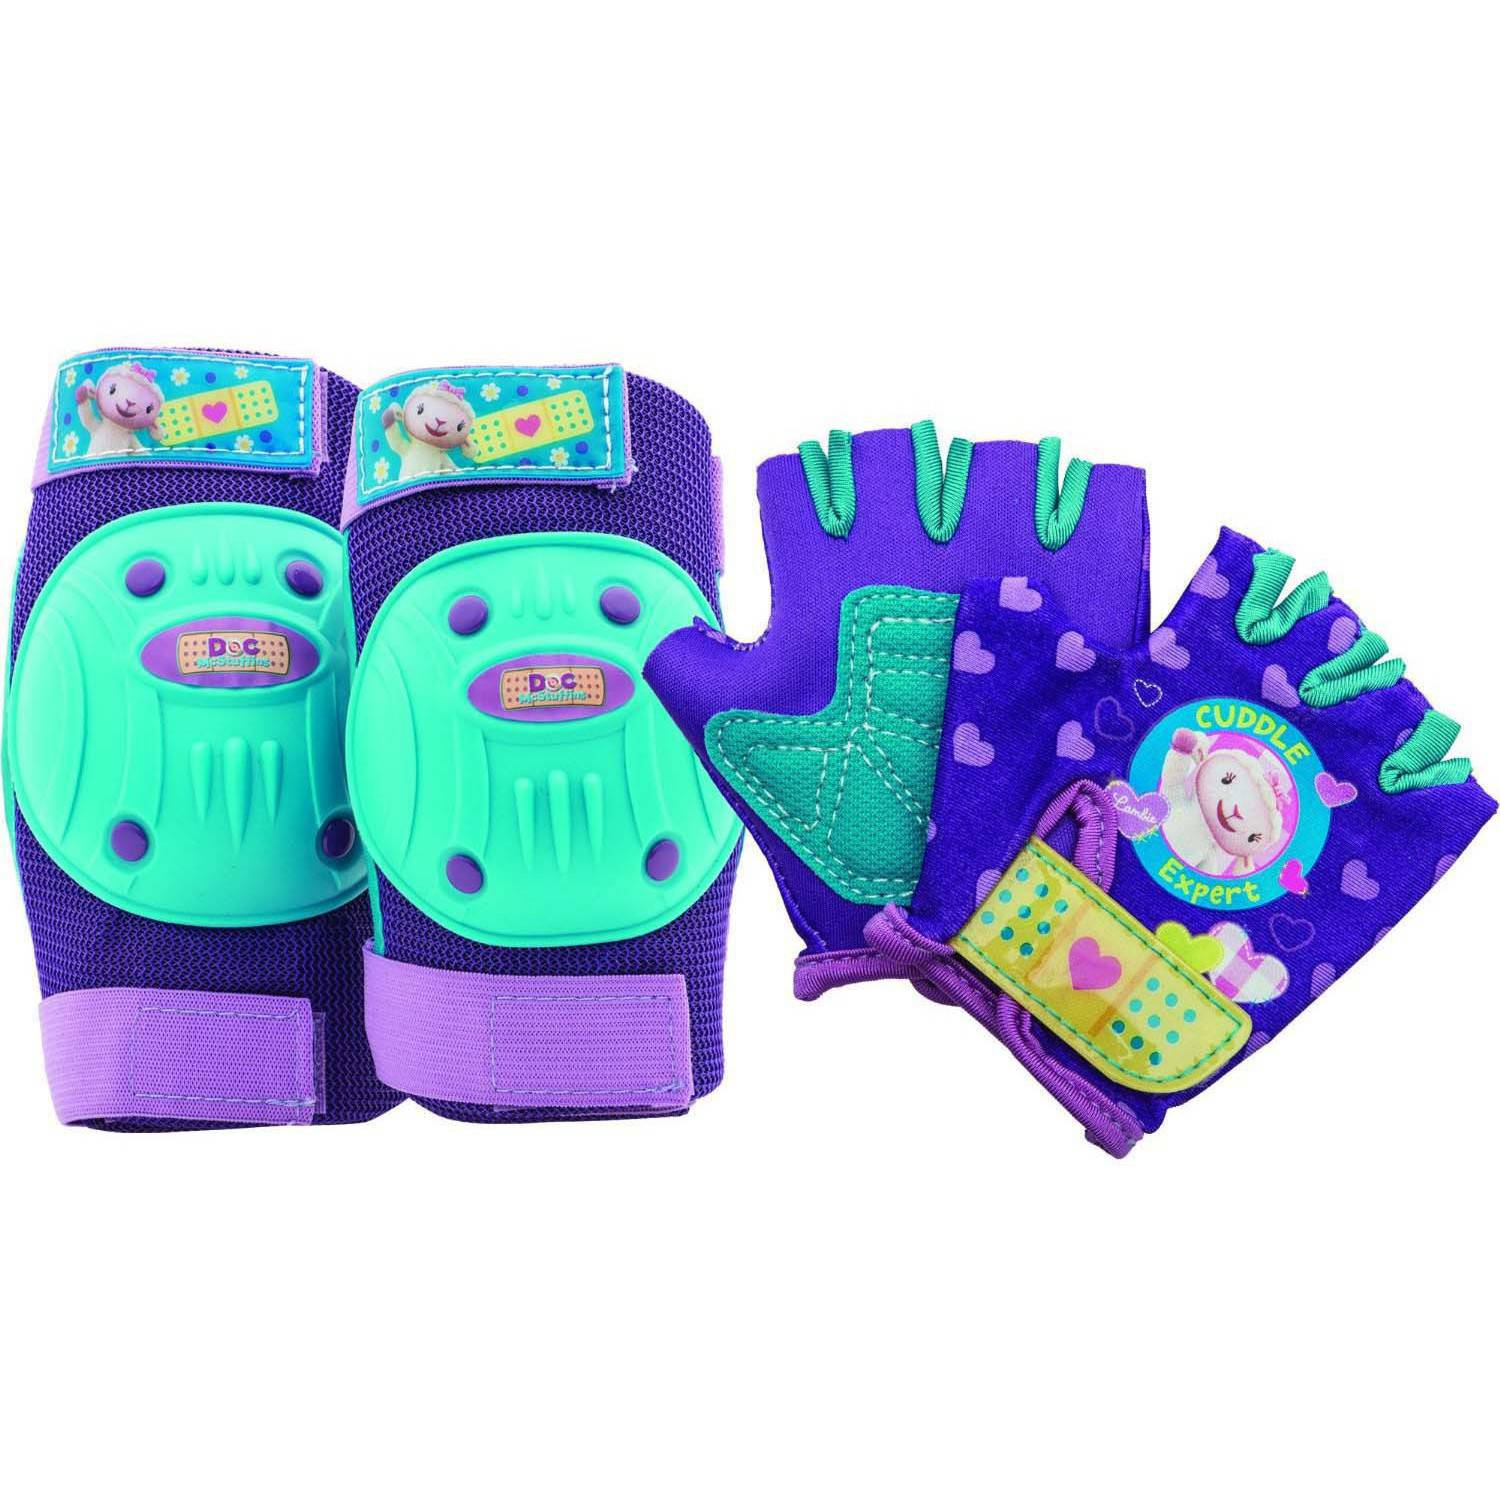 Bell Sports Disney Doc McStuffins Toddler Protective Pad and Glove Set, Purple/Teal